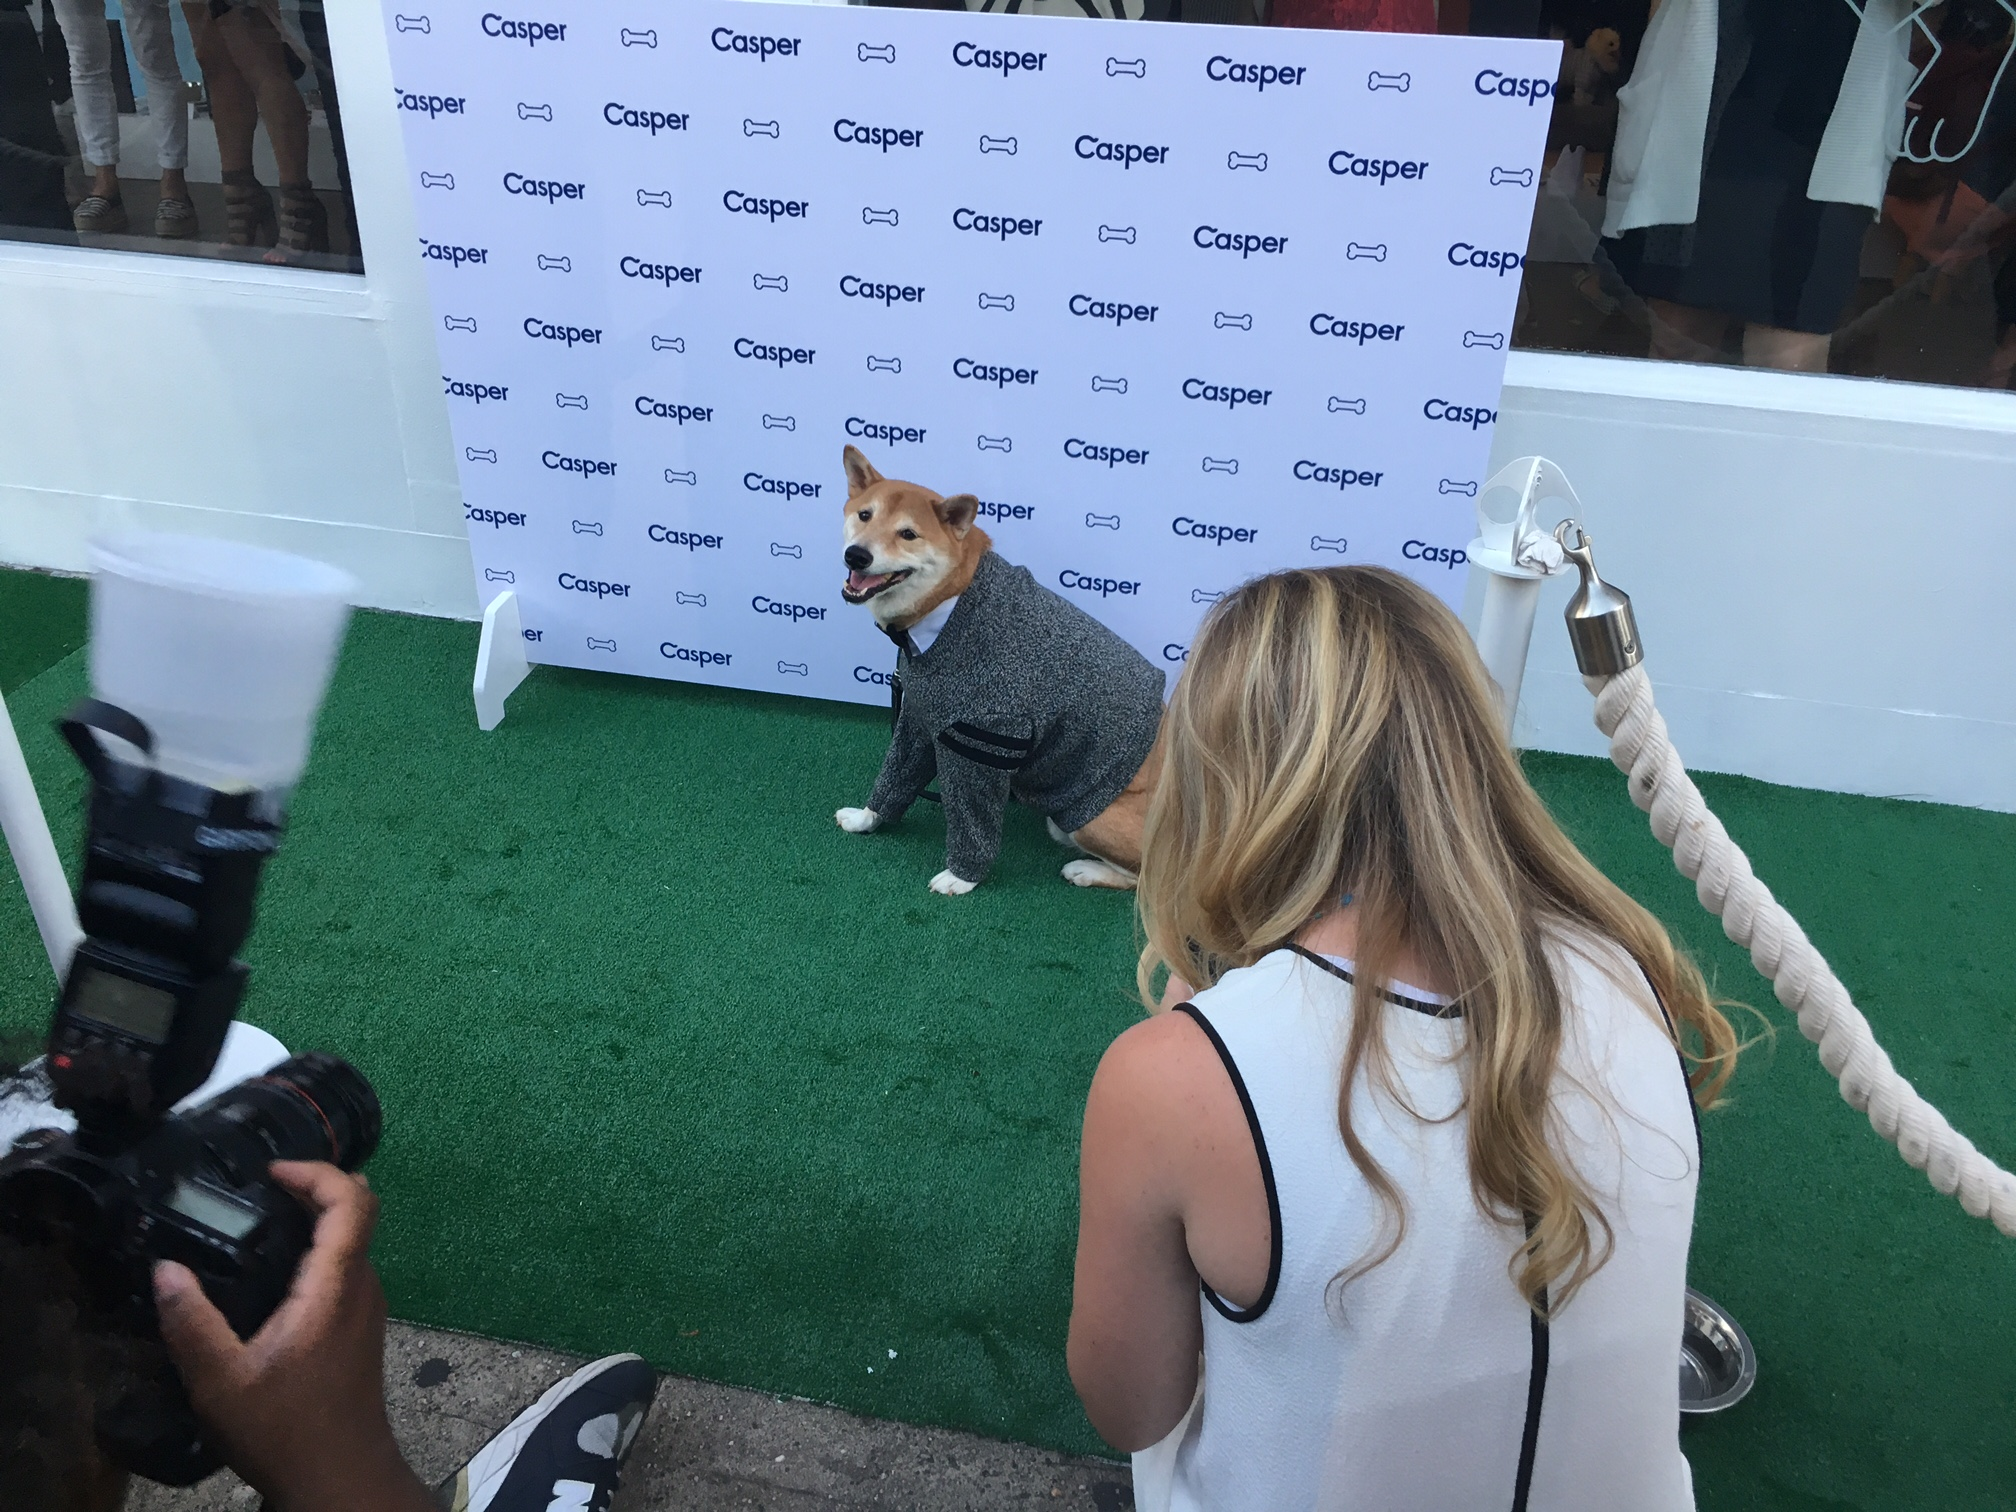 The Menswear Dog poses on the carpet before a product launch.